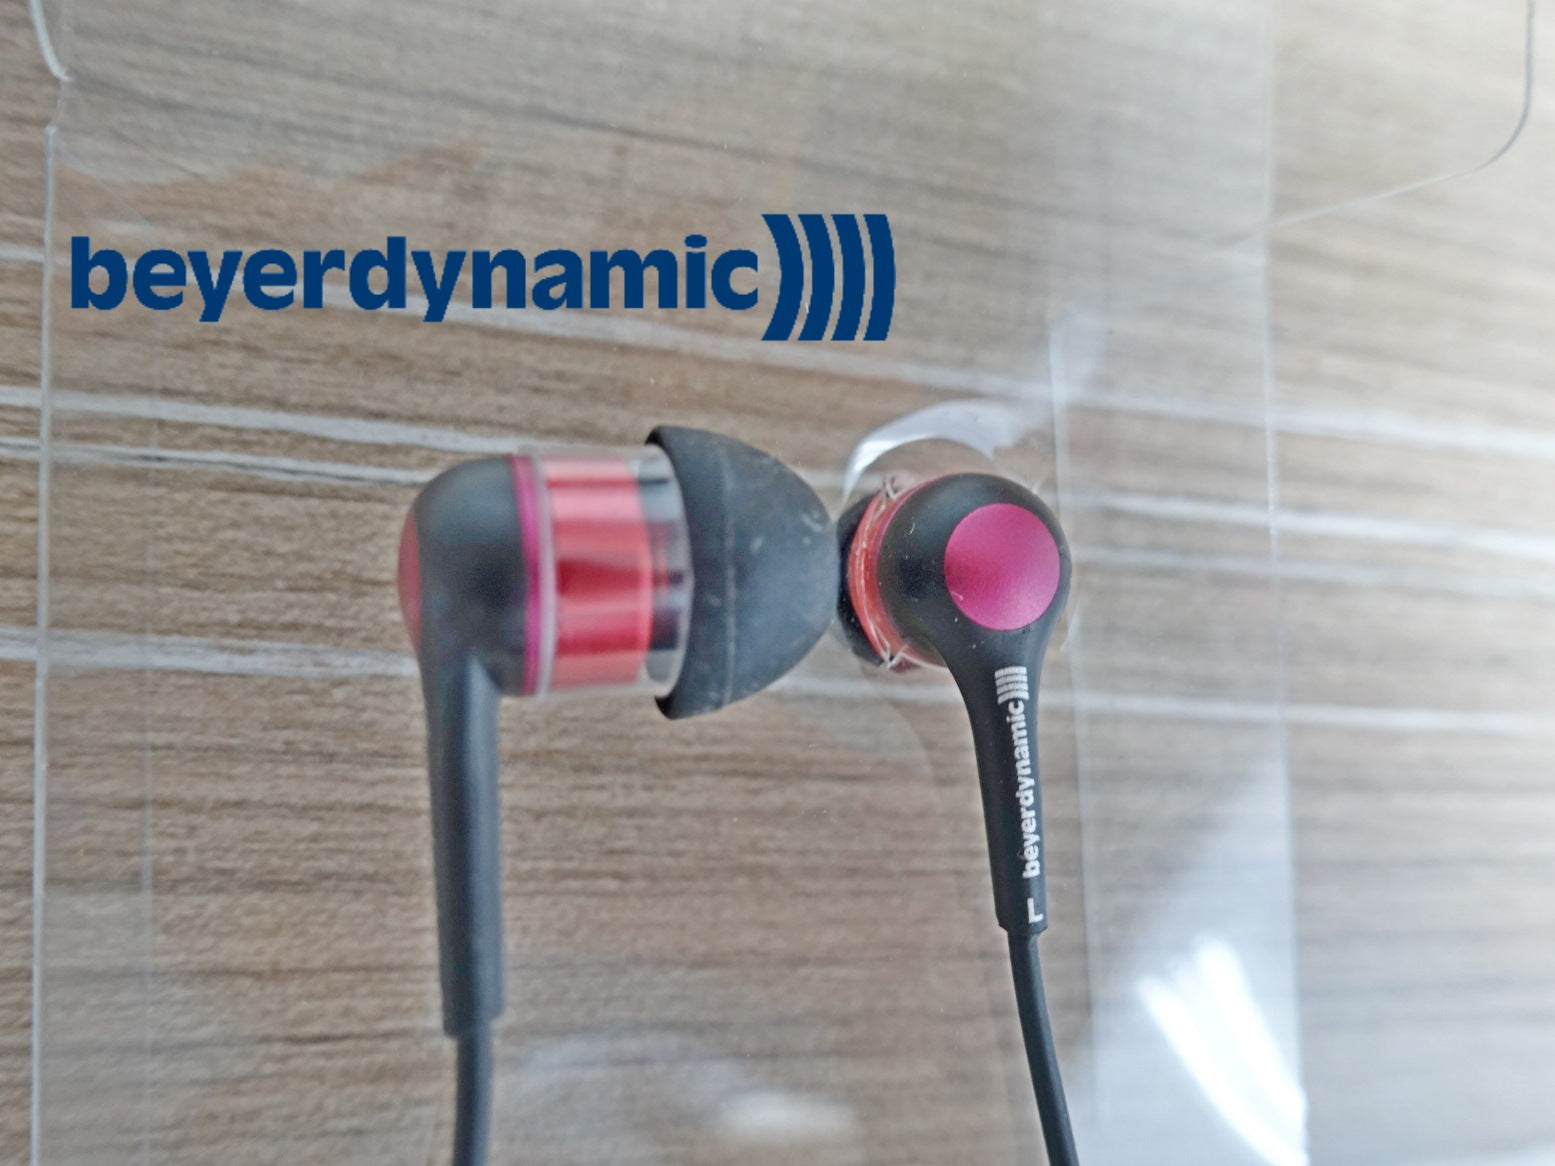 beyerdynamic DTX 71 iE Demo (SS15) - Jaben - The Little Headphone Store